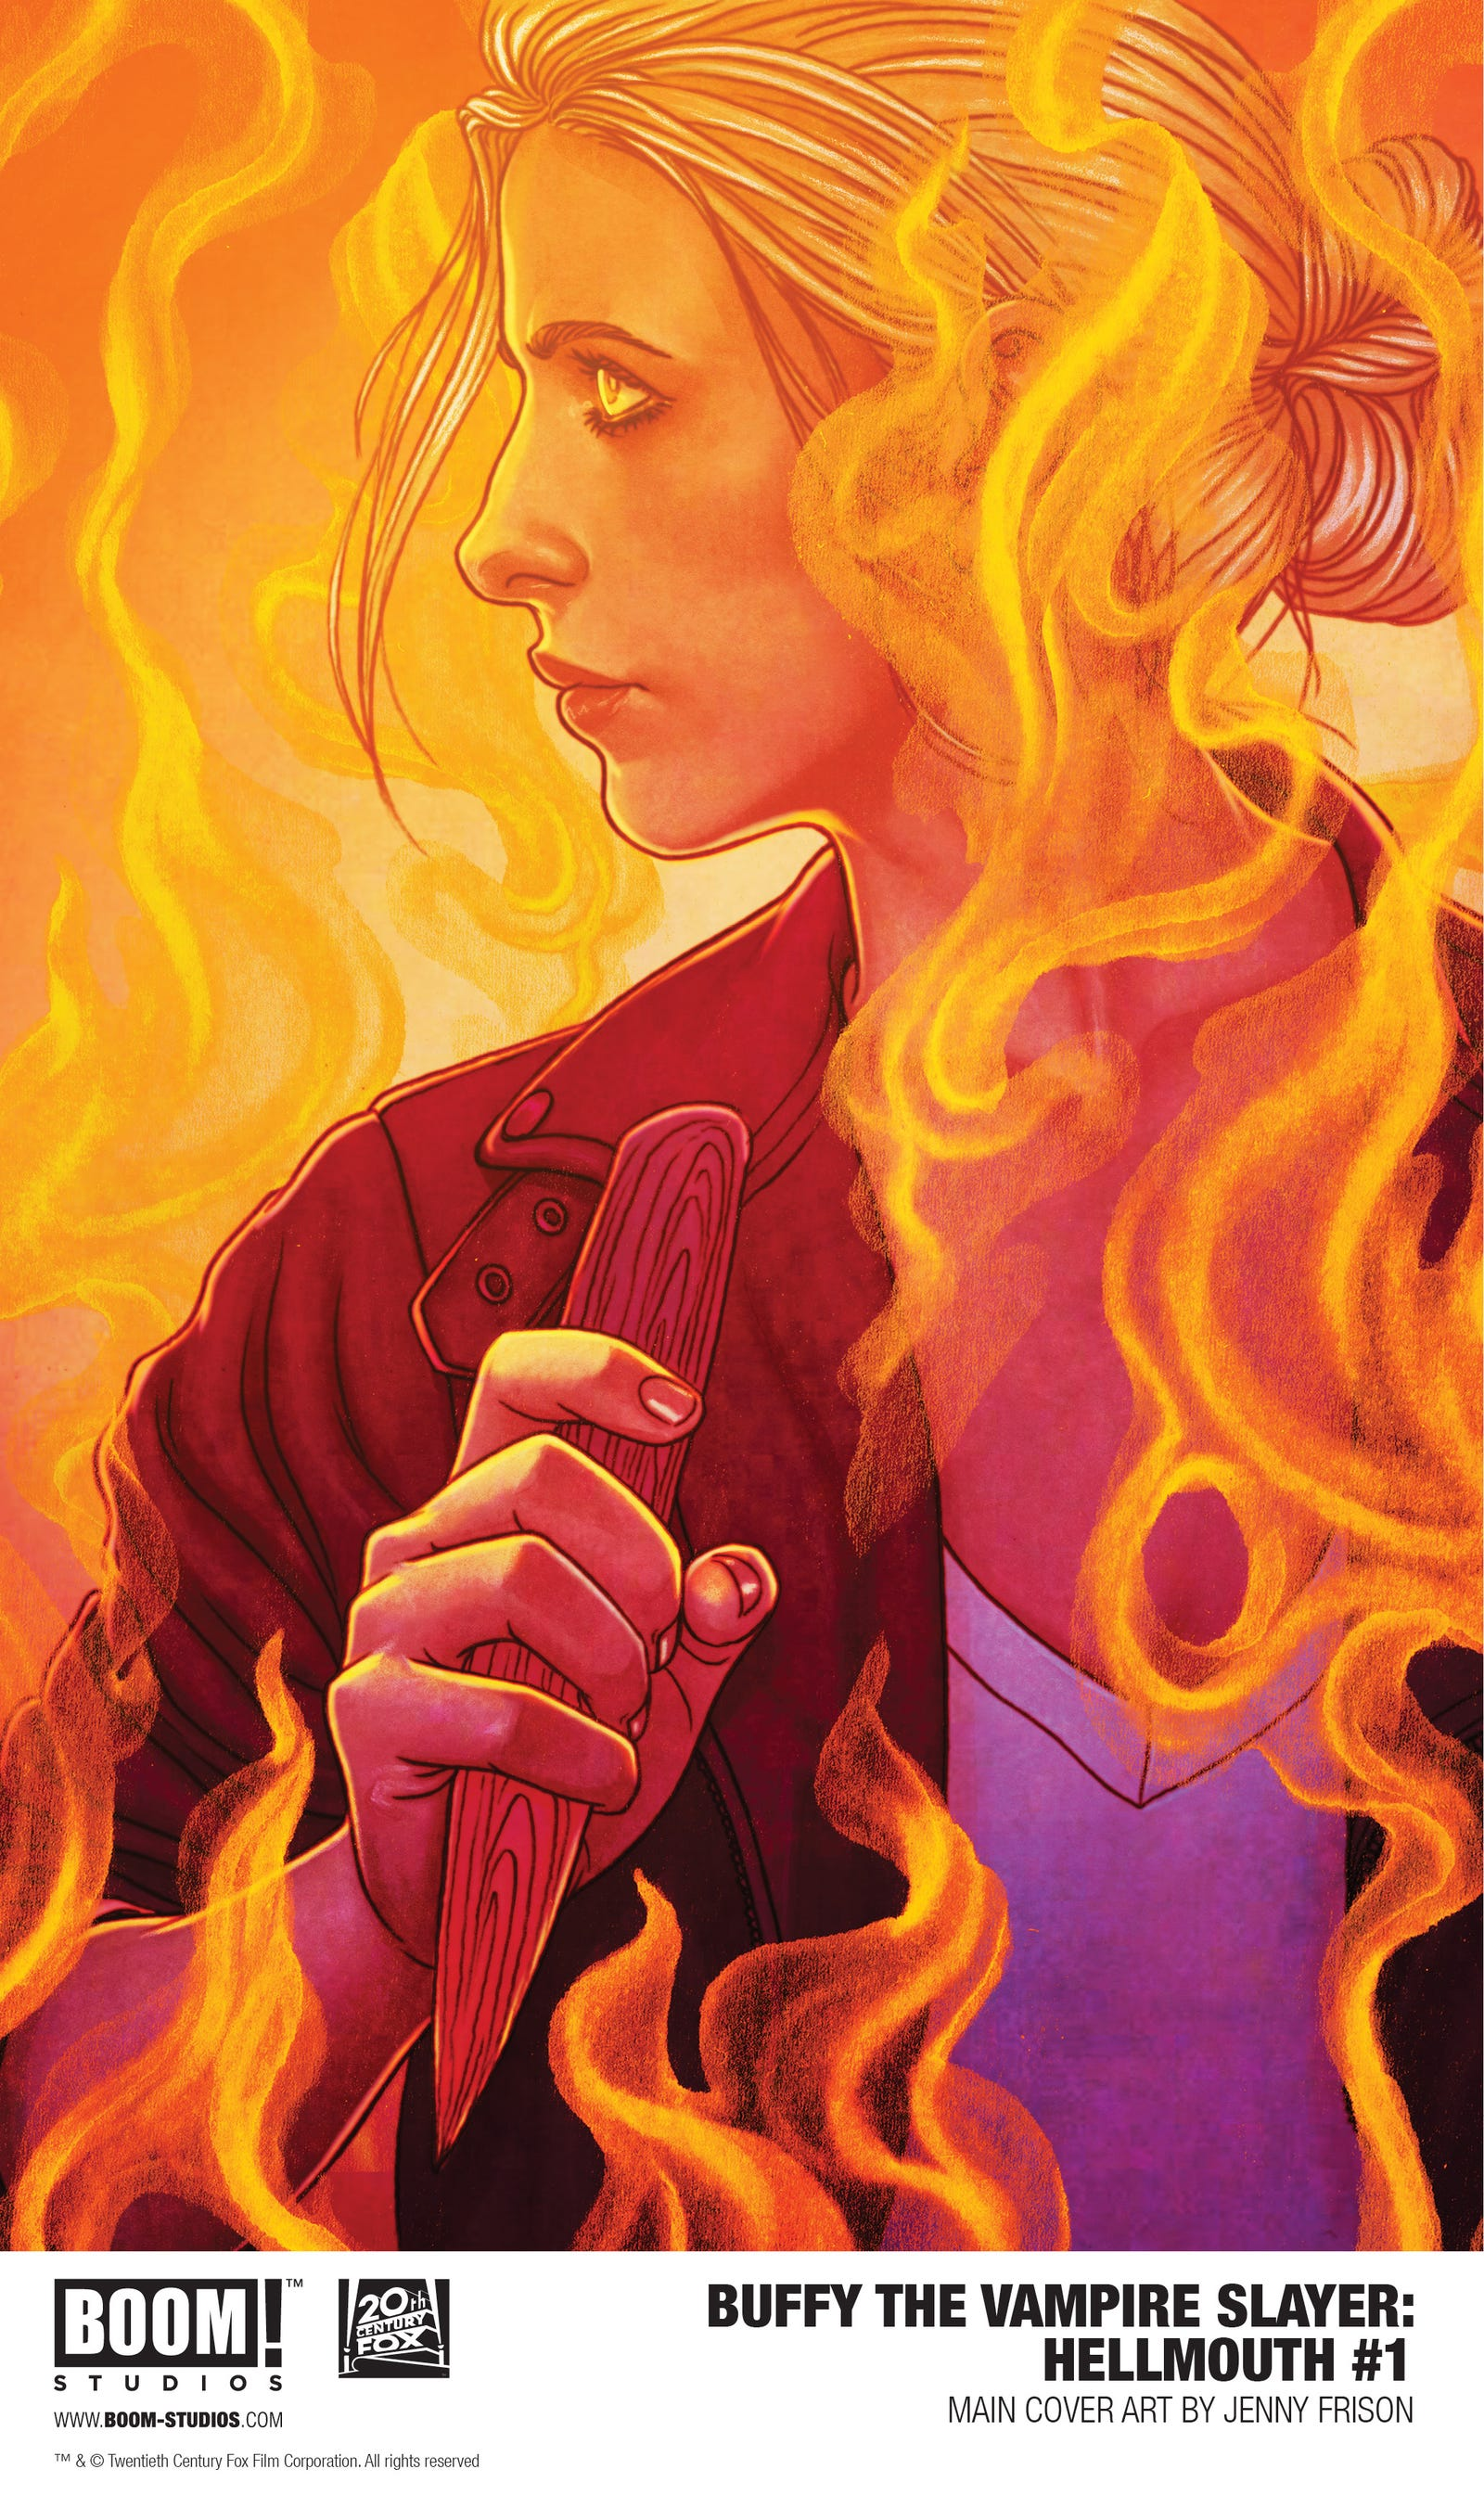 Main cover art for Hellmouth #1.